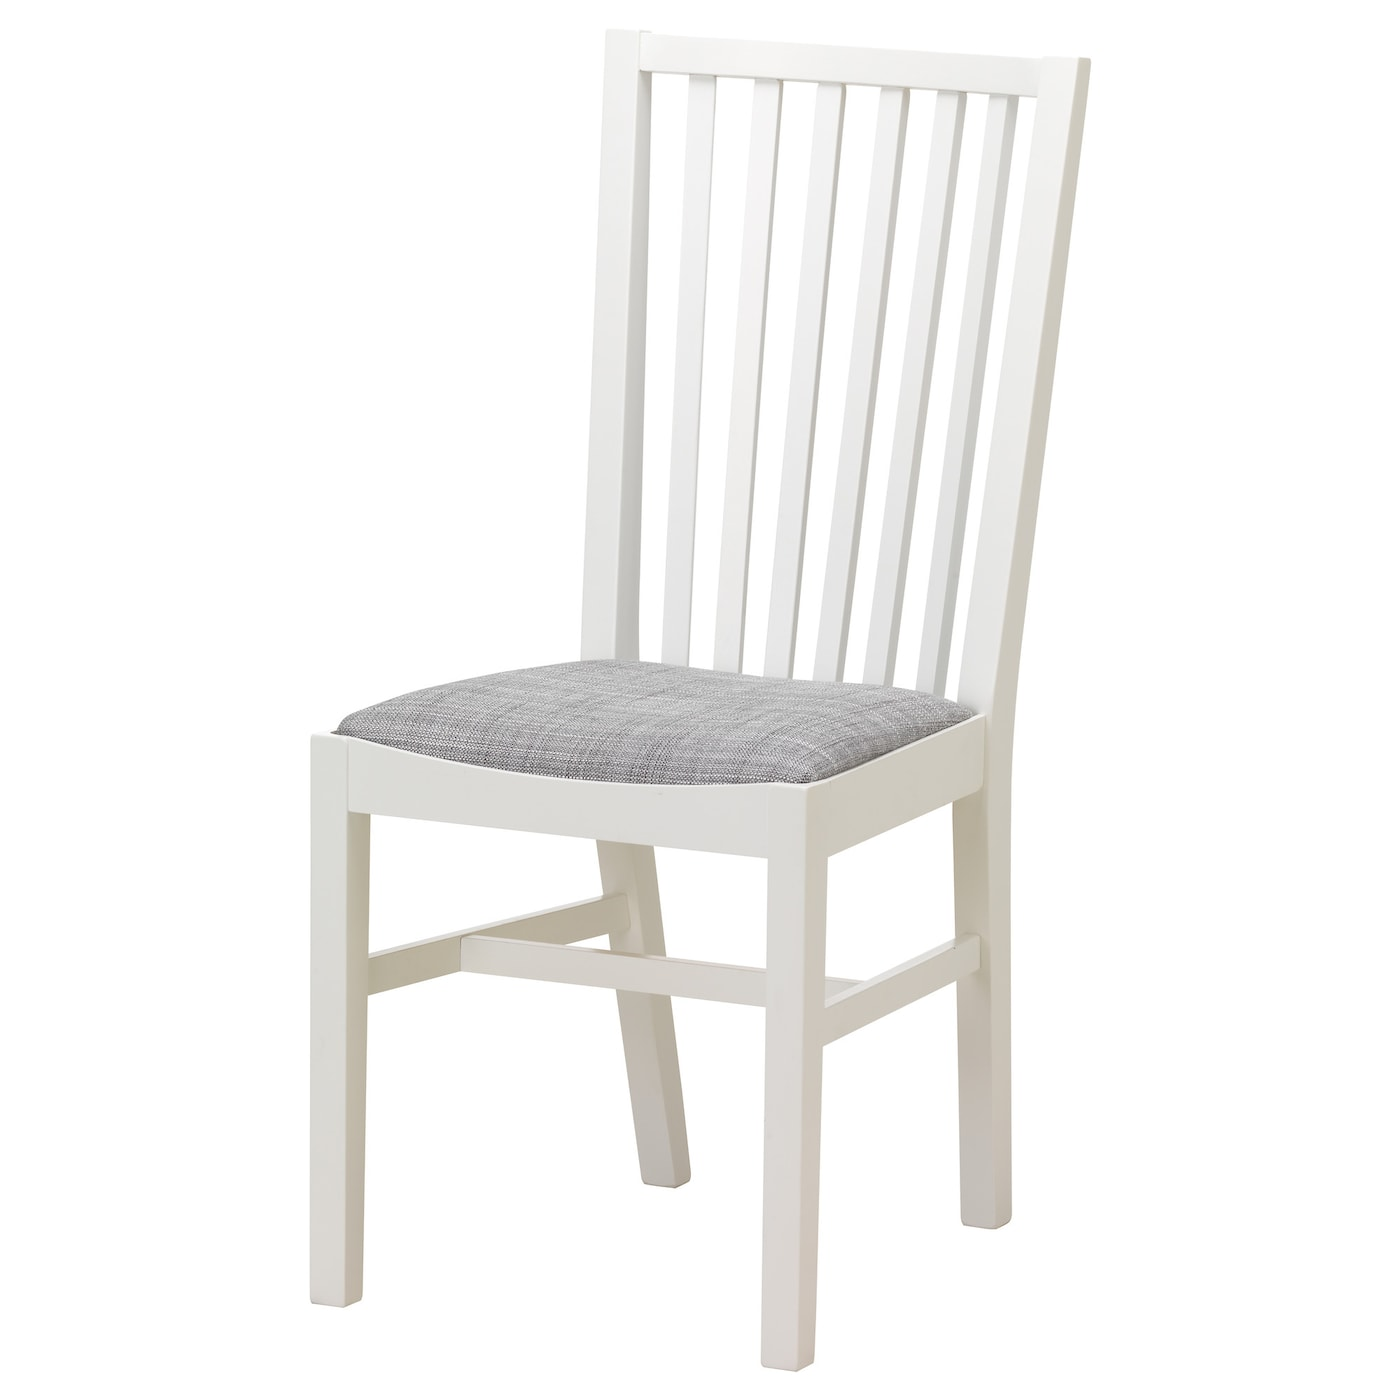 IKEA NORRNÄS chair Solid beech is a hardwearing natural material.